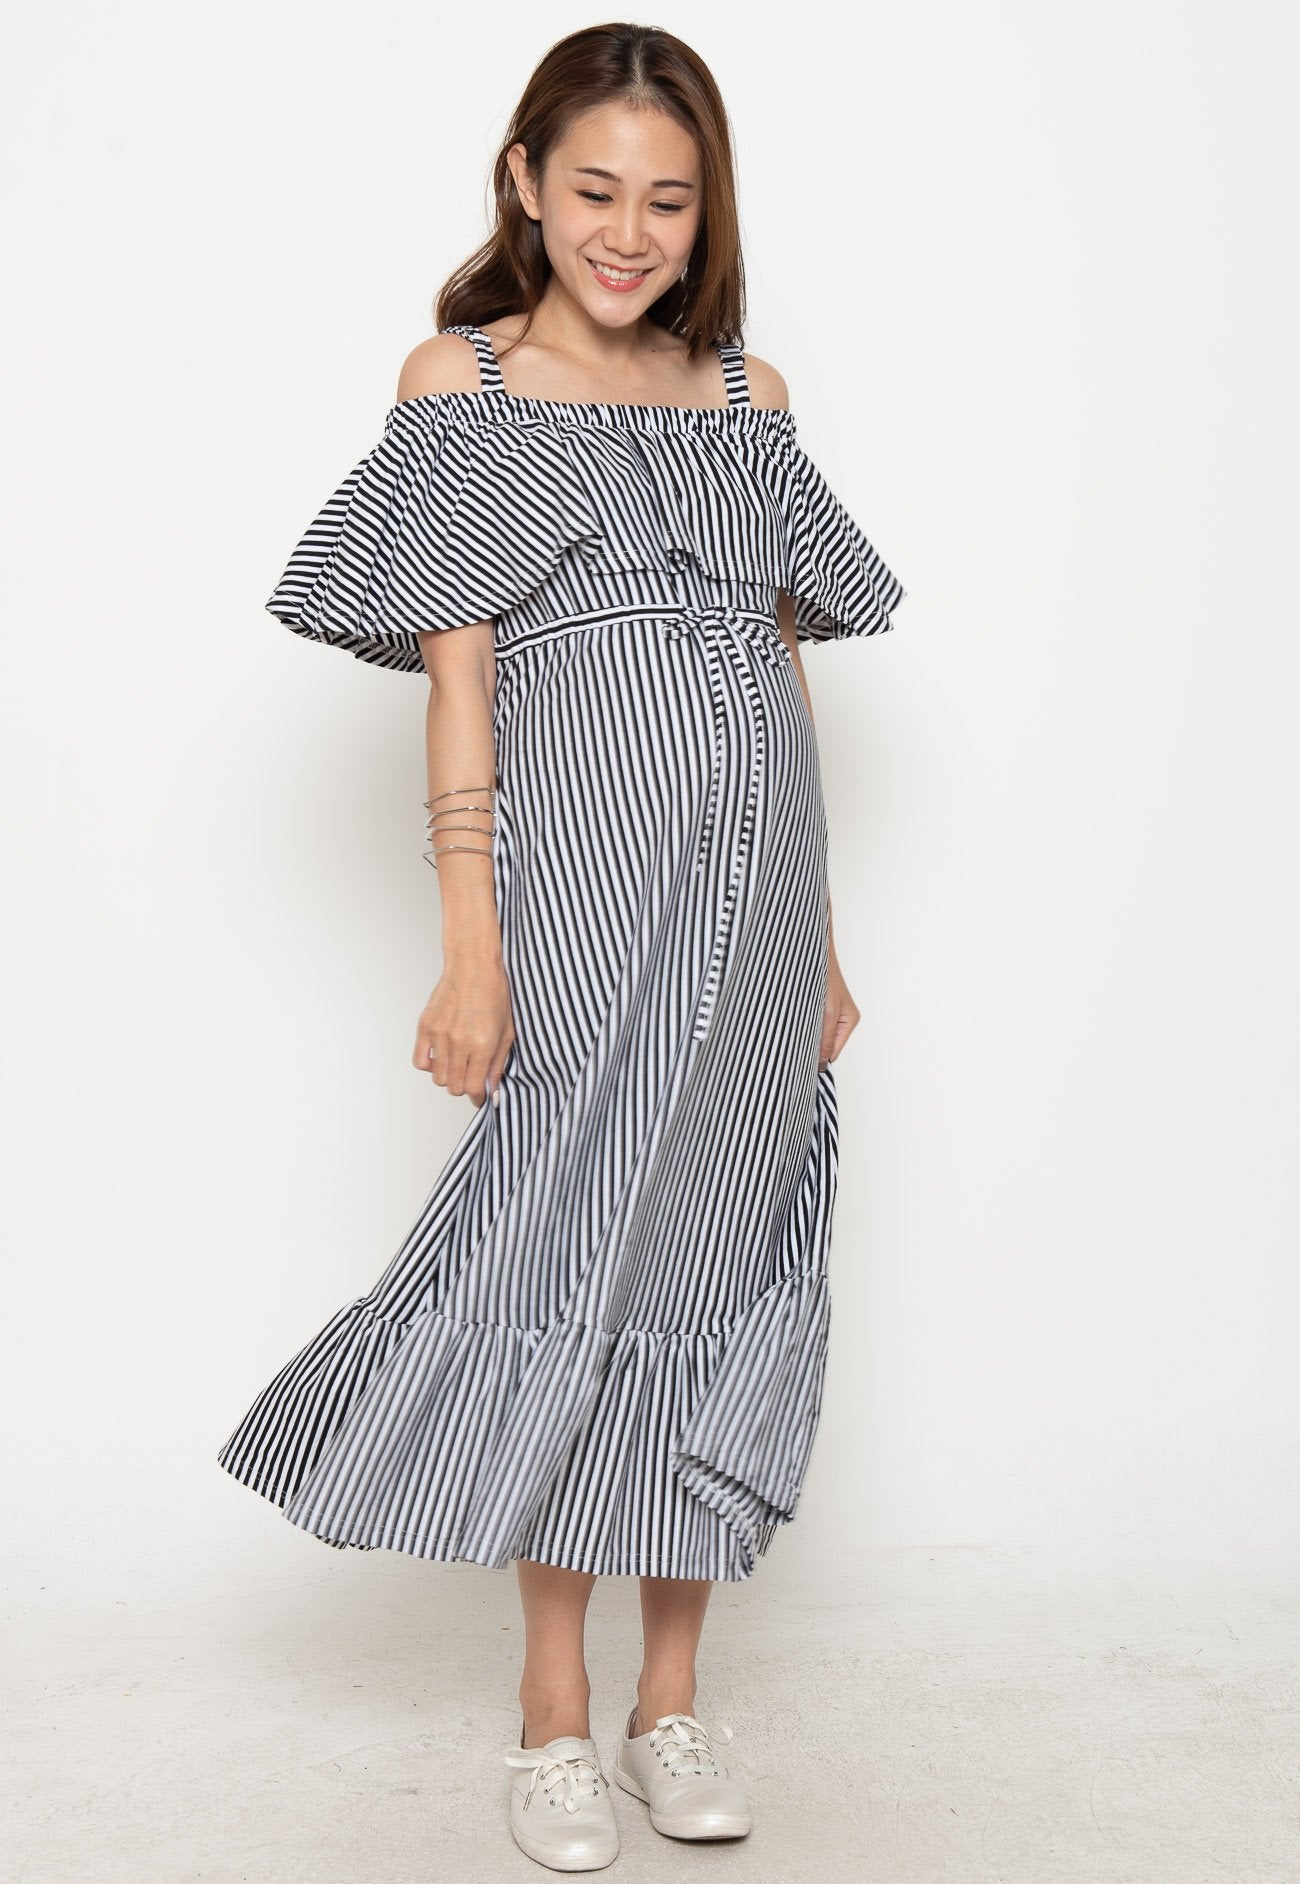 Mothercot Fayre Off The Shoulder Nursing Dress  by JumpEatCry - Maternity and nursing wear